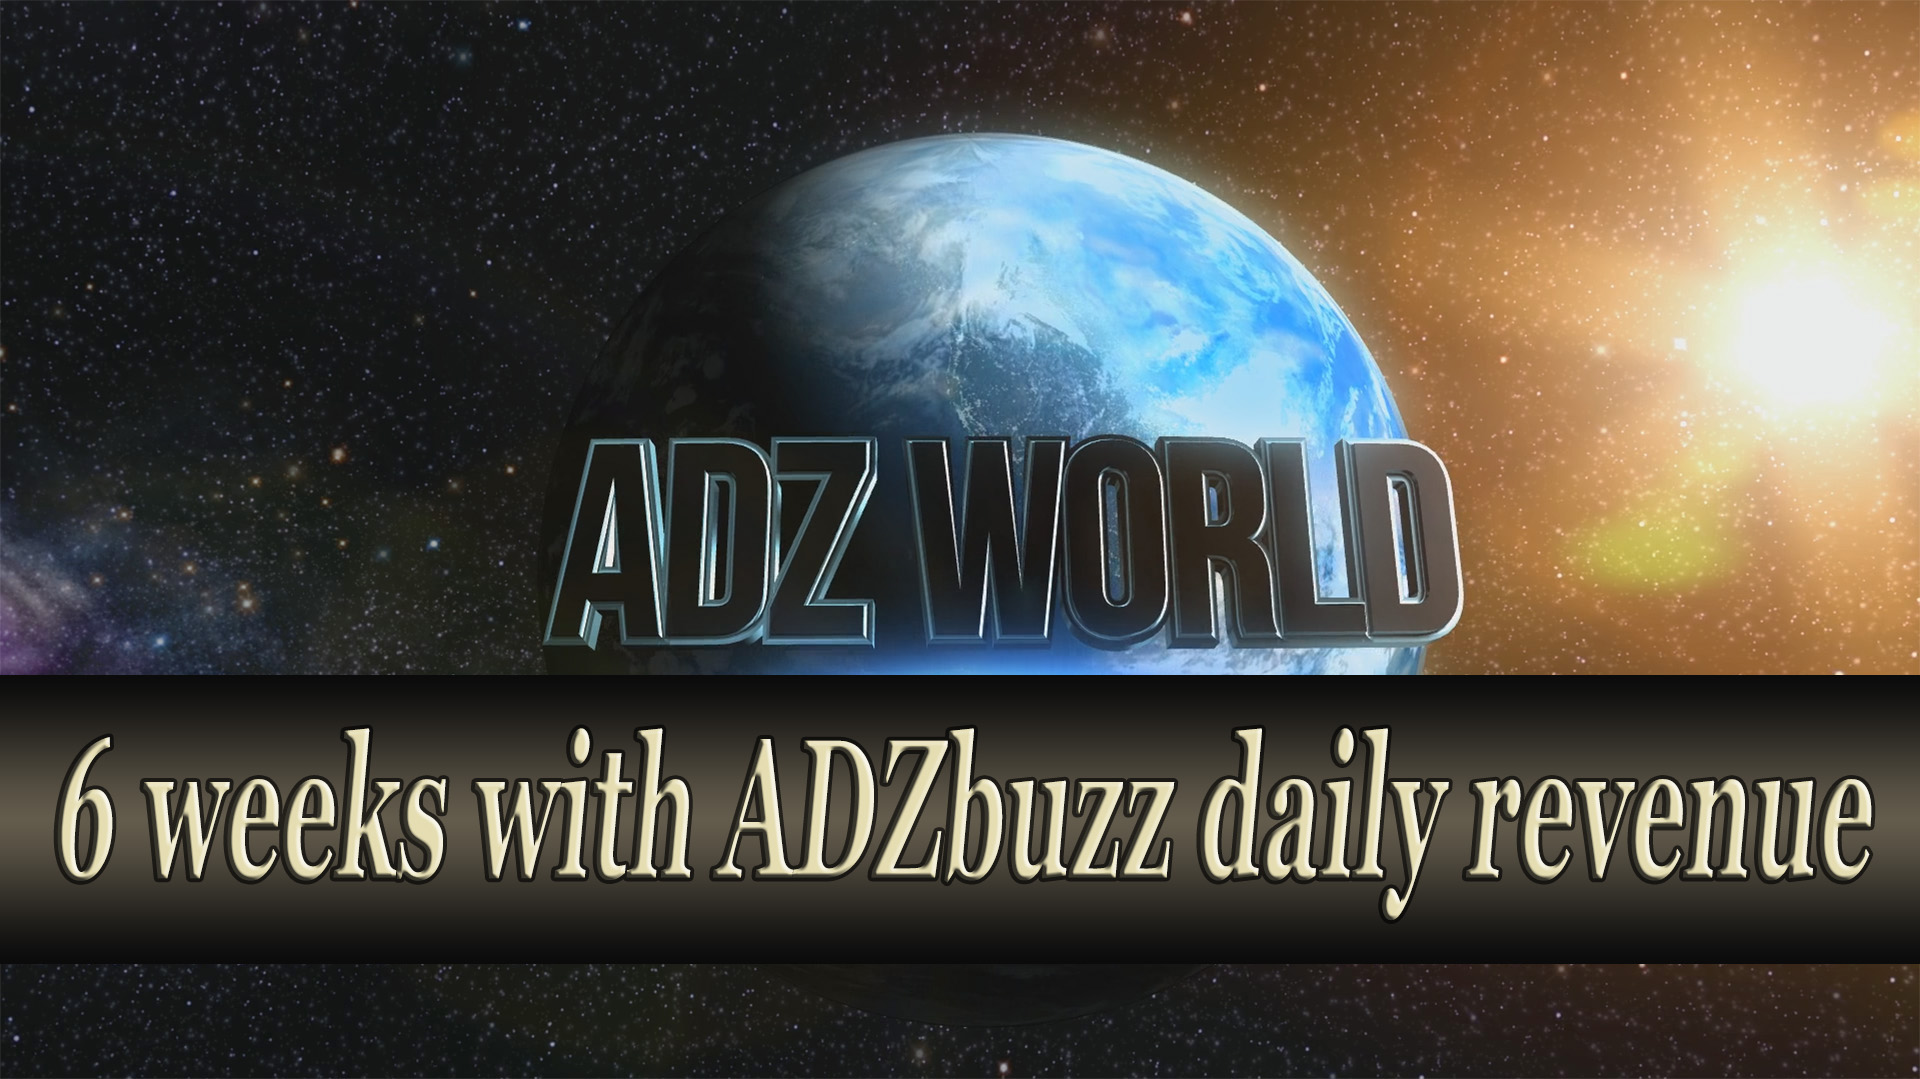 My life with ADZbuzz – 6 weeks with daily earnings